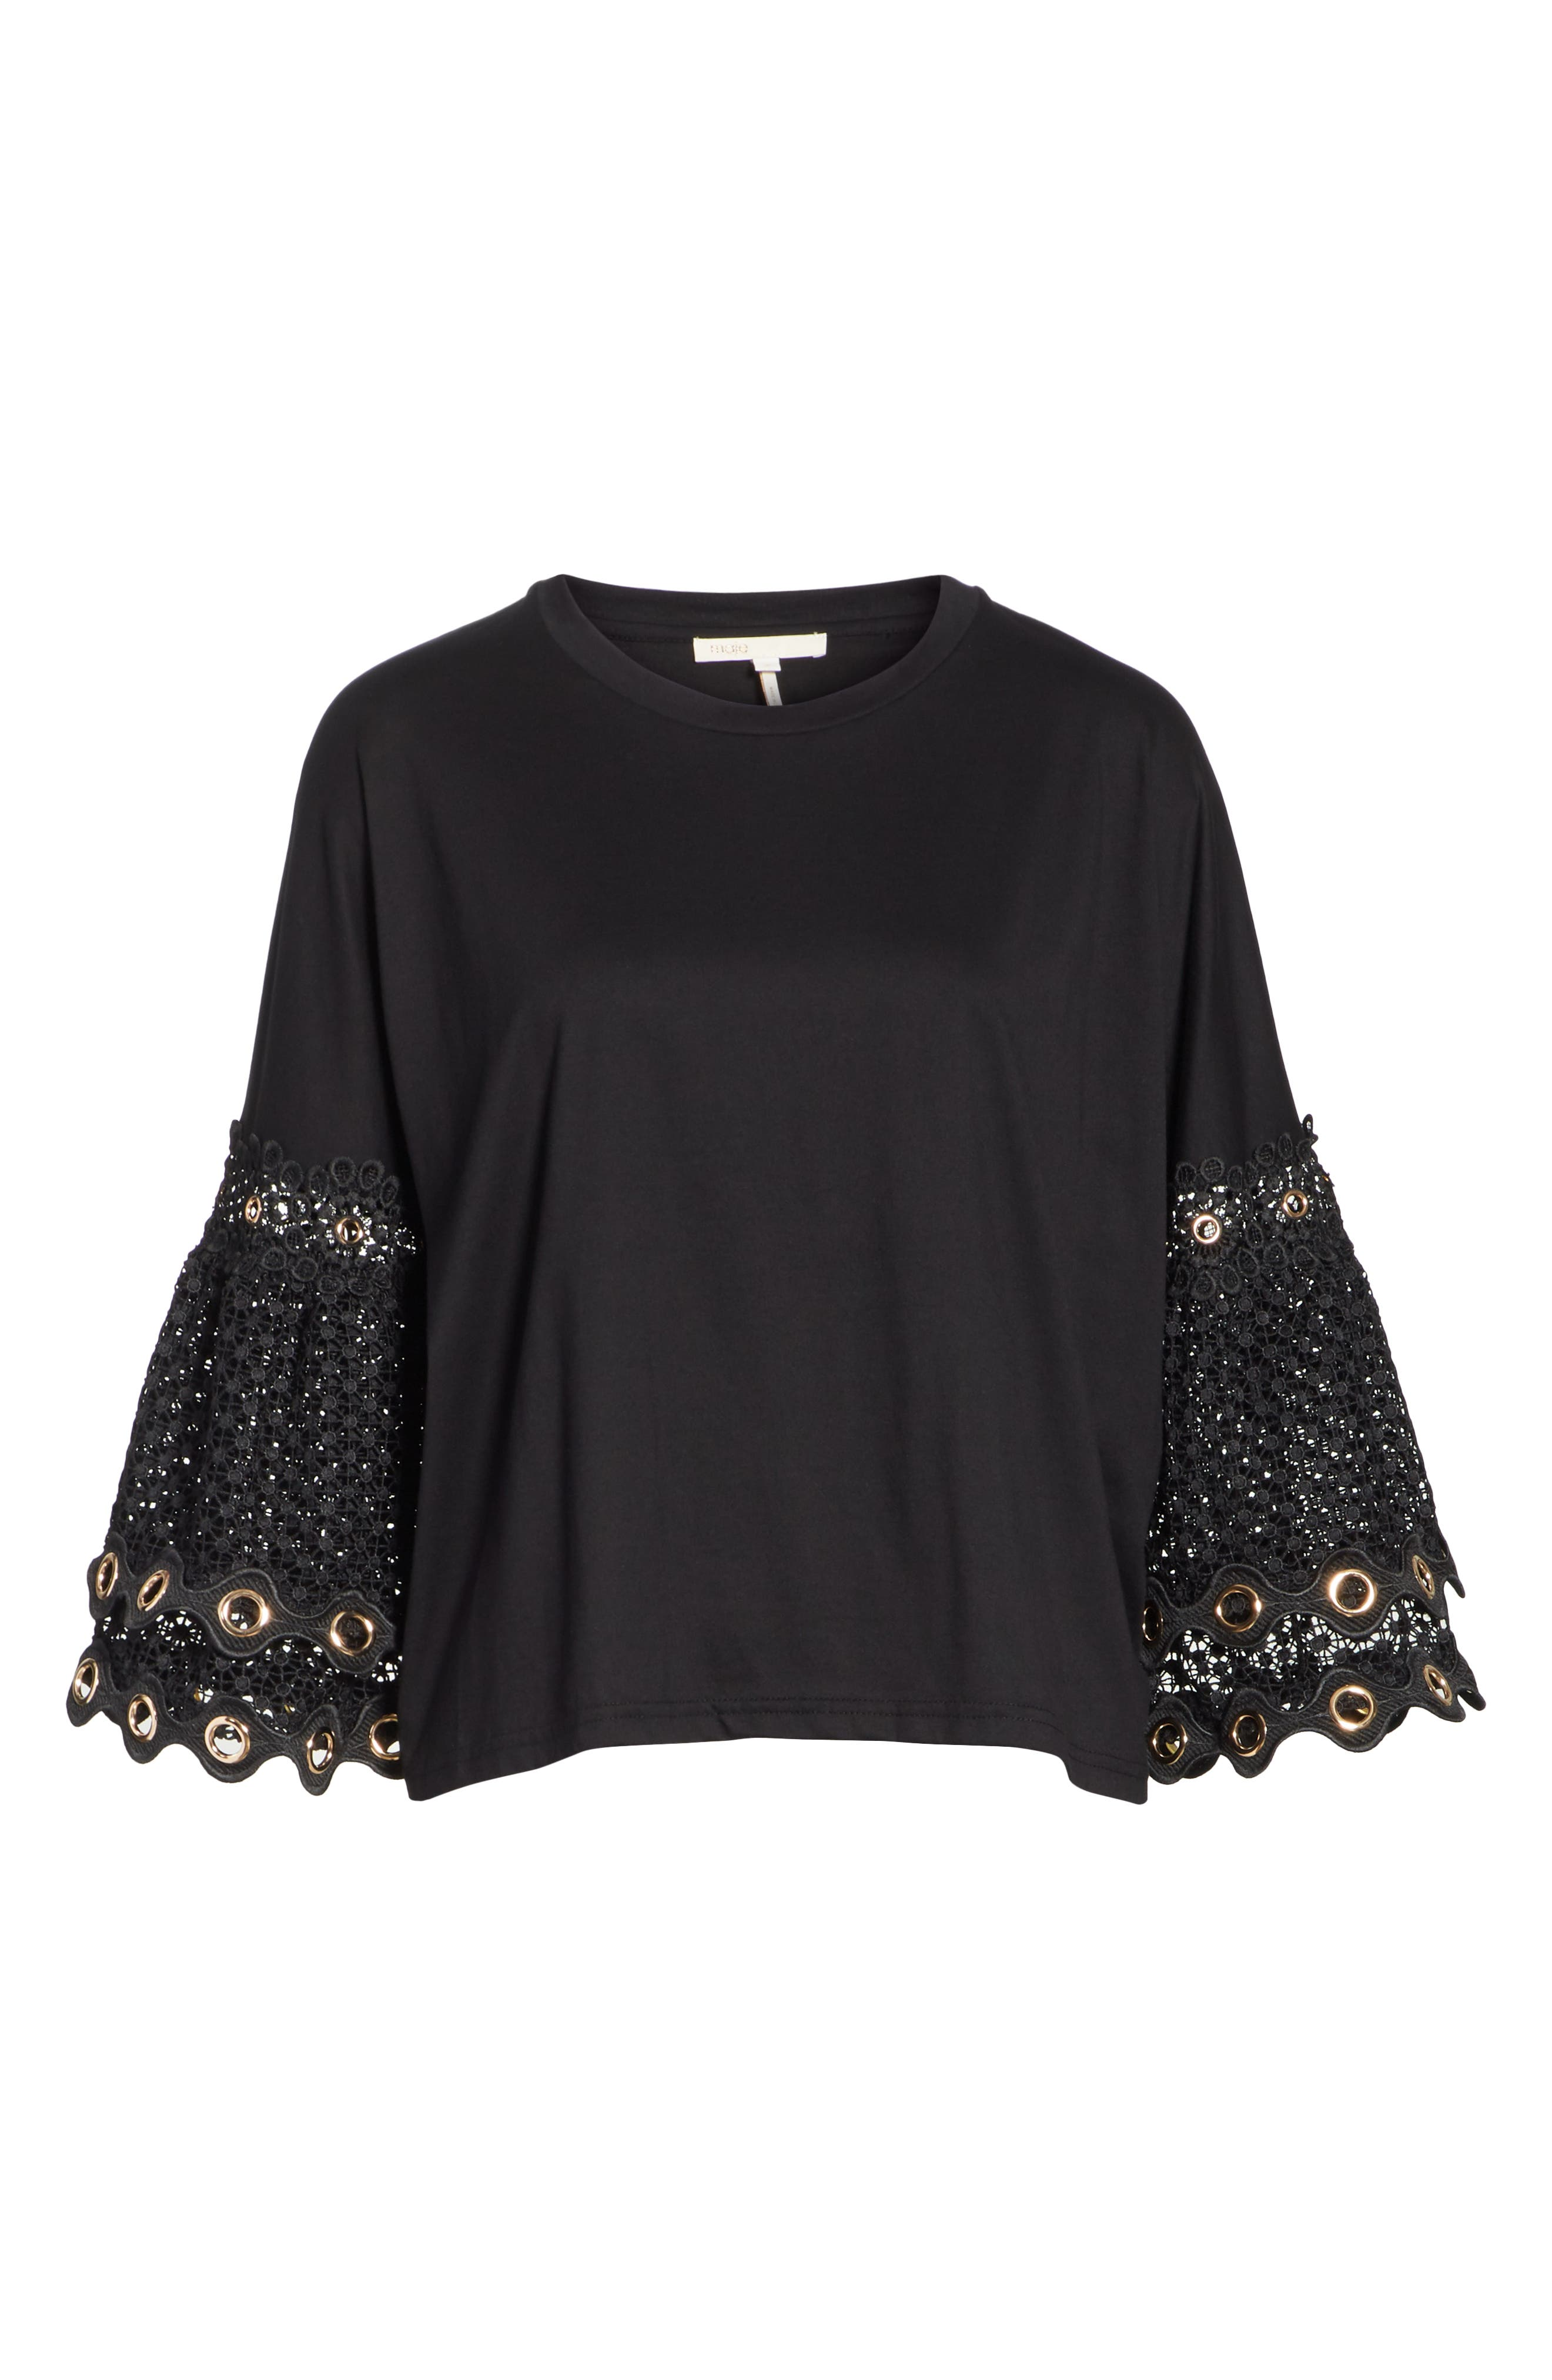 Lace Sleeve Top,                             Alternate thumbnail 6, color,                             001